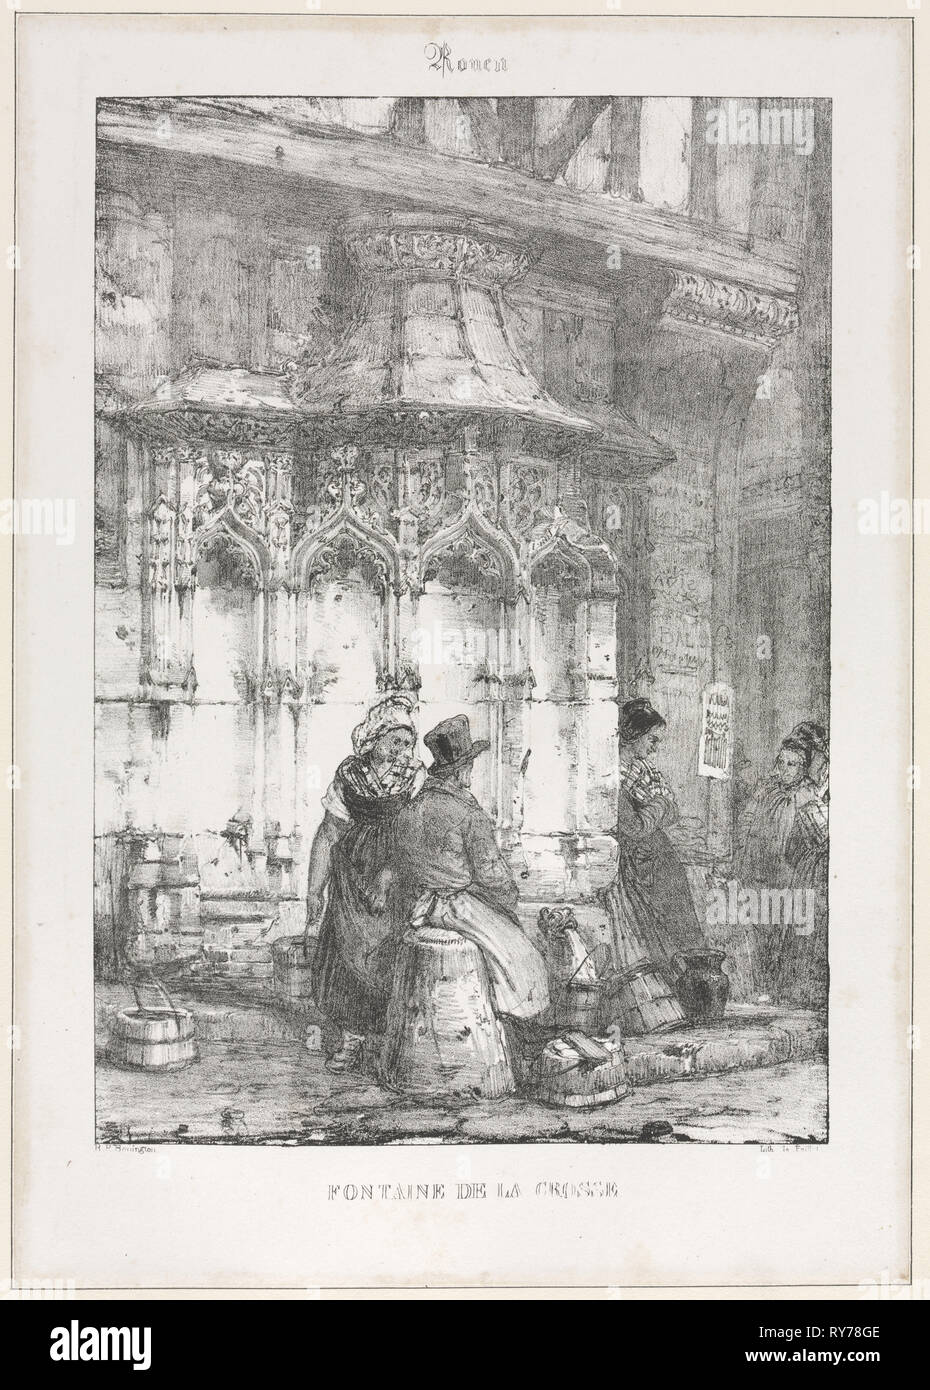 Architectural Remains and Fragments: Rouen - Fontaine de la Crosse, 1827. Richard Parkes Bonington (British, 1802-1828), after François Alexandre Pernot (French, 1793-1865). Lithograph on chine collé tipped into mount; sheet: 52.1 x 33.6 cm (20 1/2 x 13 1/4 in.); platemark: 23.2 x 16.3 cm (9 1/8 x 6 7/16 in.); with black border: 28 x 20 cm (11 x 7 7/8 in - Stock Image